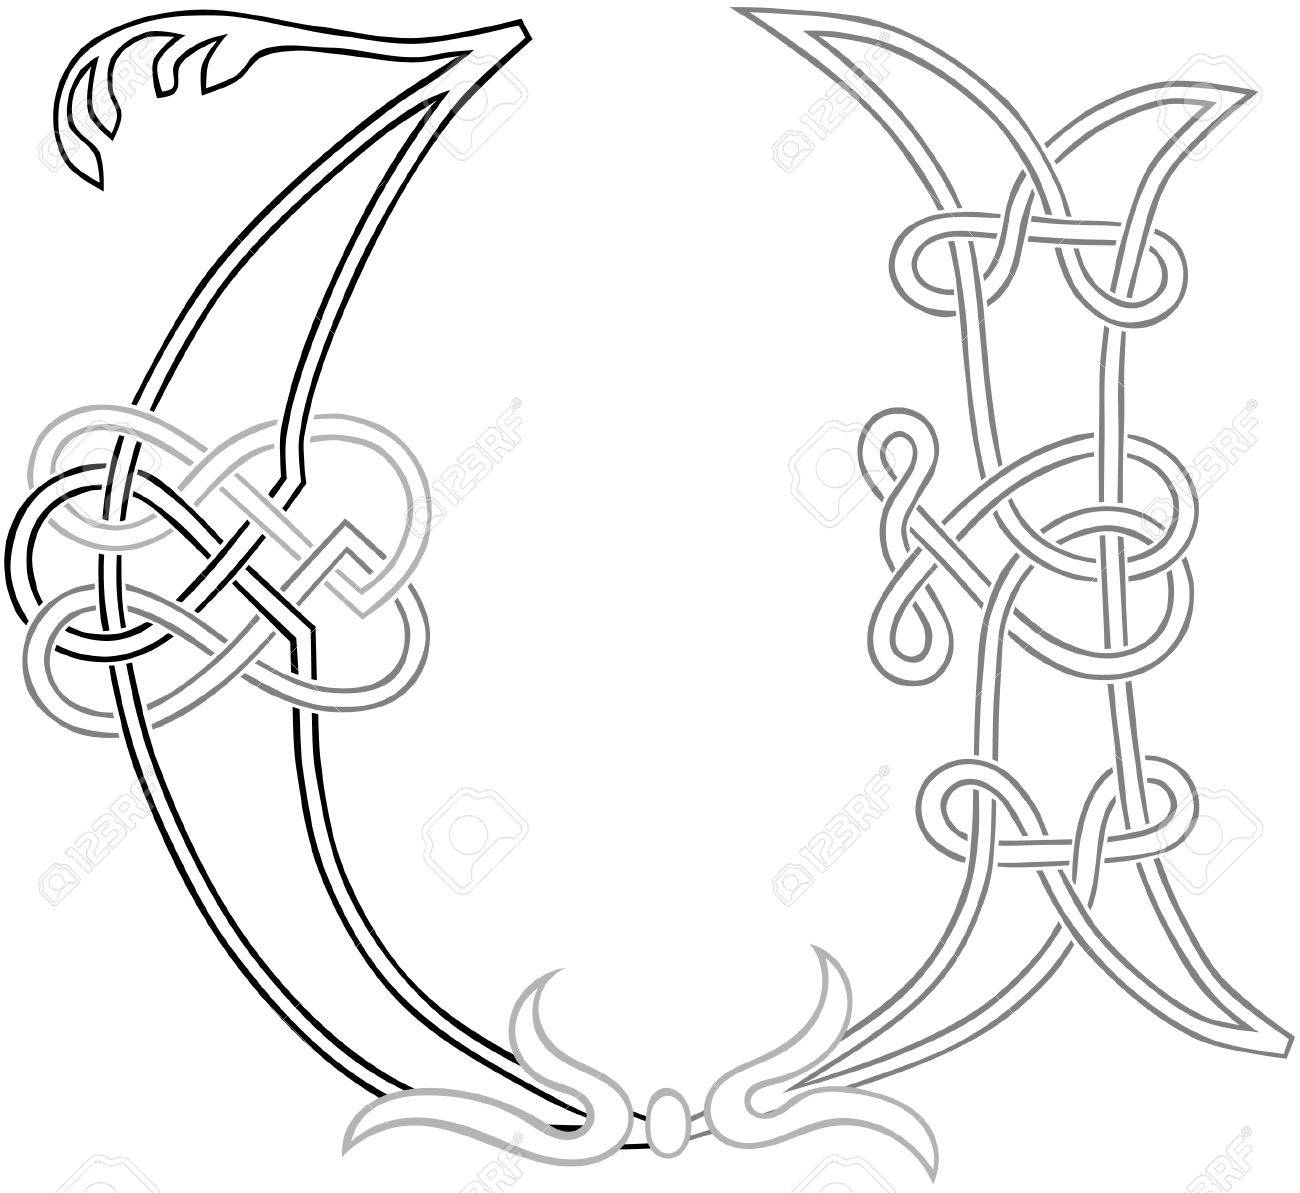 A Celtic Knot-work Capital Letter U Stylized Outline Royalty Free ...